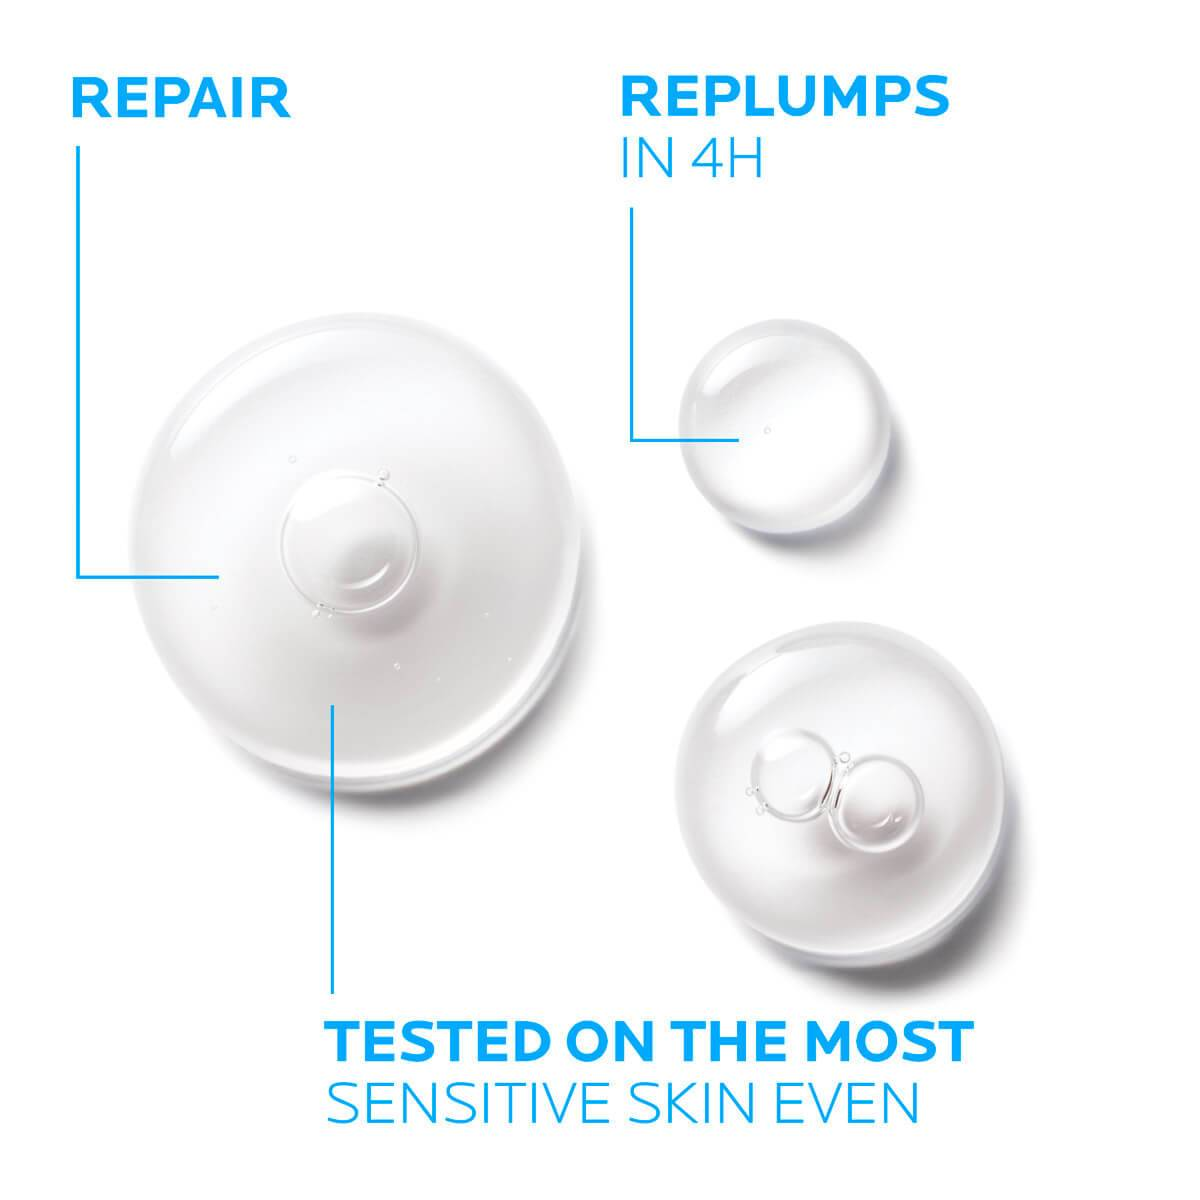 La Roche Posay ProductPage Anti Aging Hyalu B5 Texture